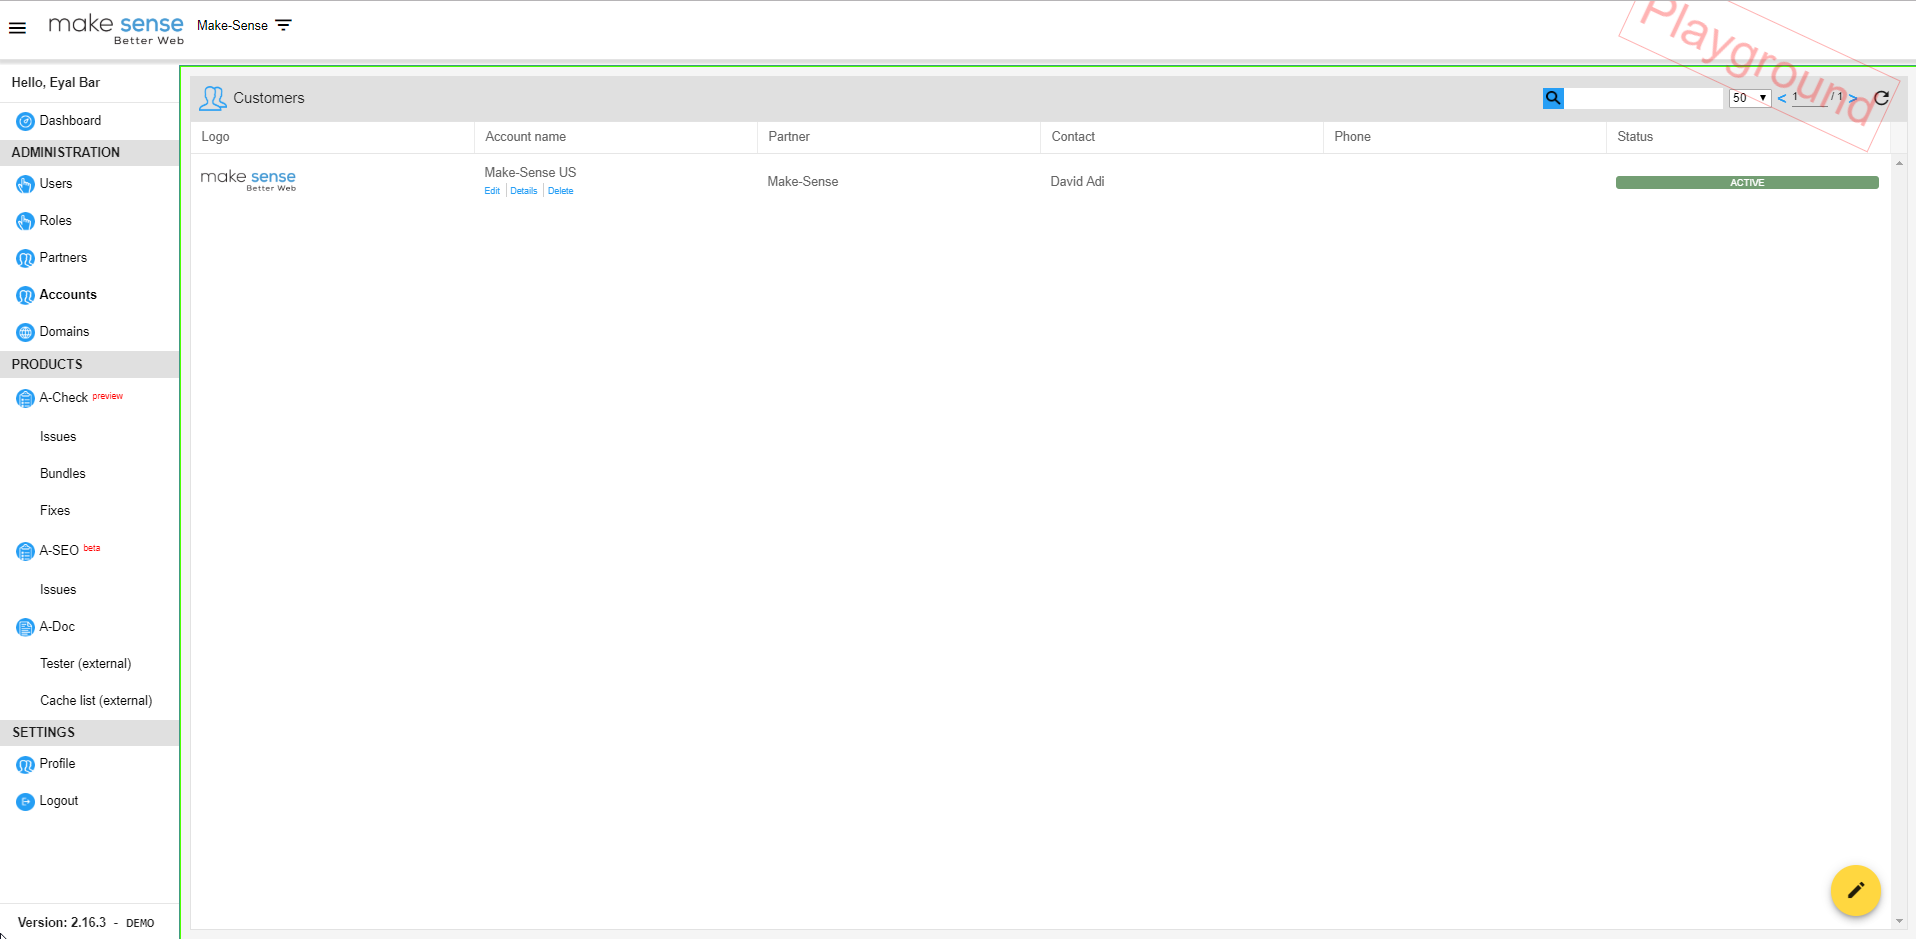 Image of accounts section. allows to create new accounts, edit and display existing accounts.